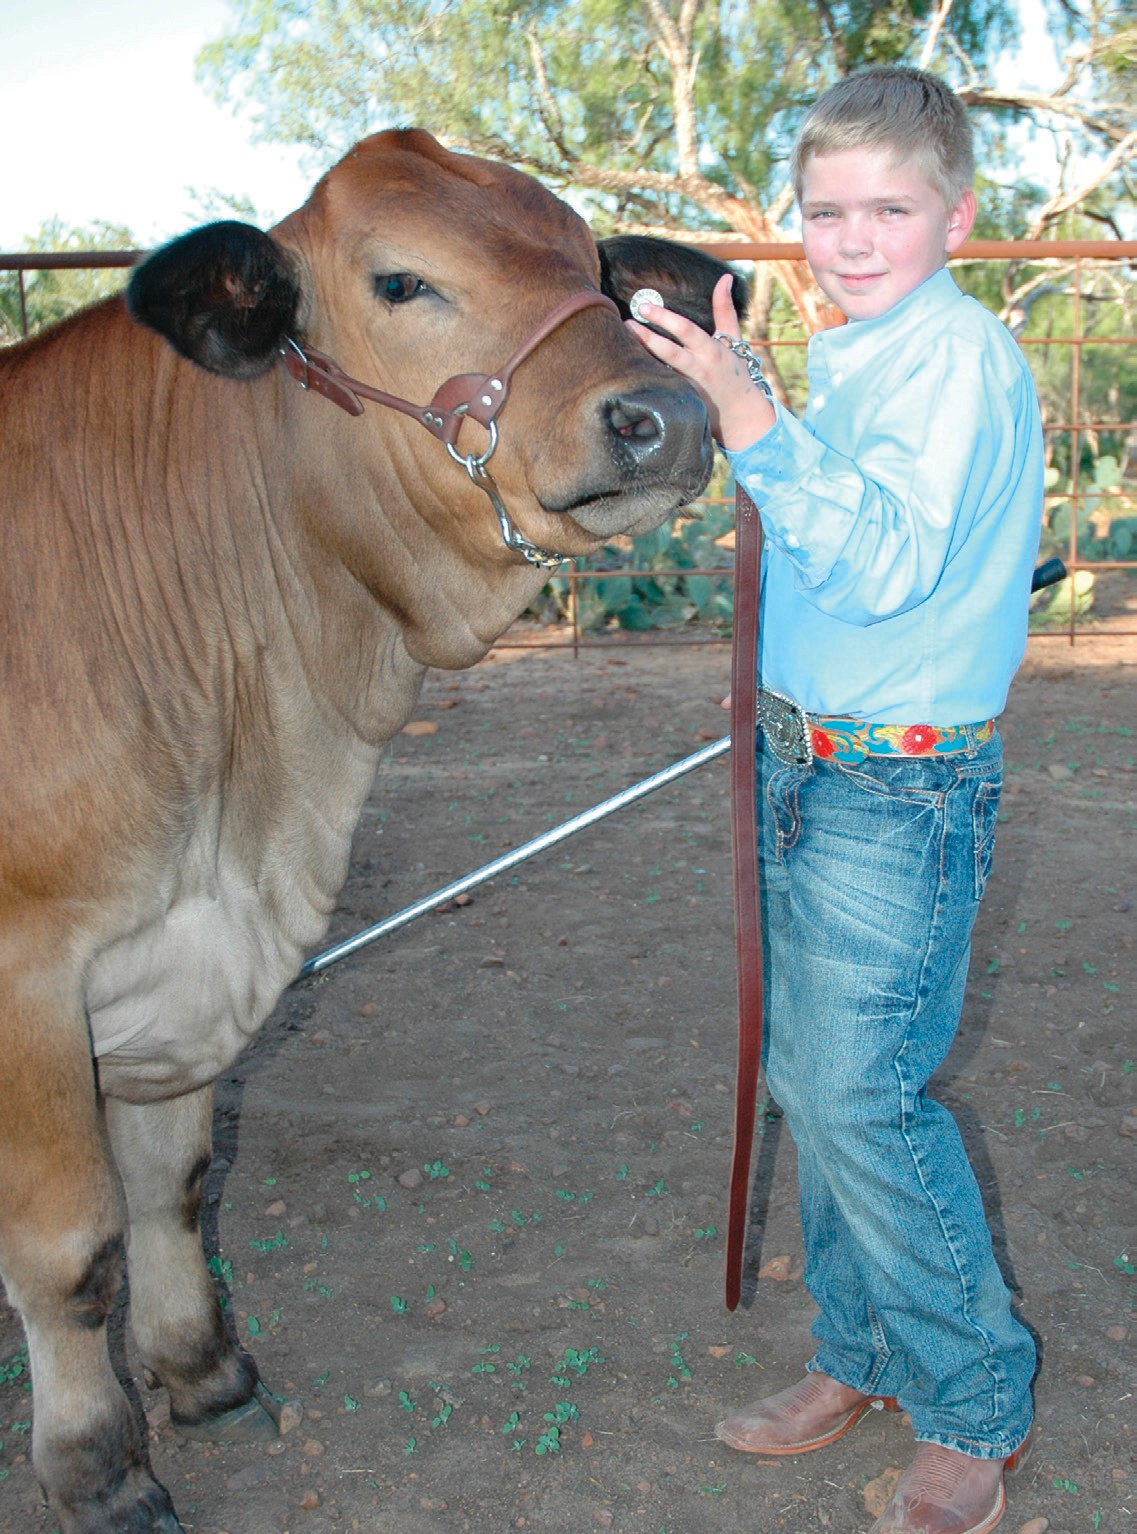 """Derek Scharmann and his Simbrah steer """"Billy the Kid"""" invite you to come watch them and enjoy the Atascosa County Fair this weekend, October 5 & 6. Prospect shows and home arts competition will be held at the Poteet Strawberry Festival grounds. Derek is the 11-year-old-son of Stephanie Rankin and Keith Scharmann."""